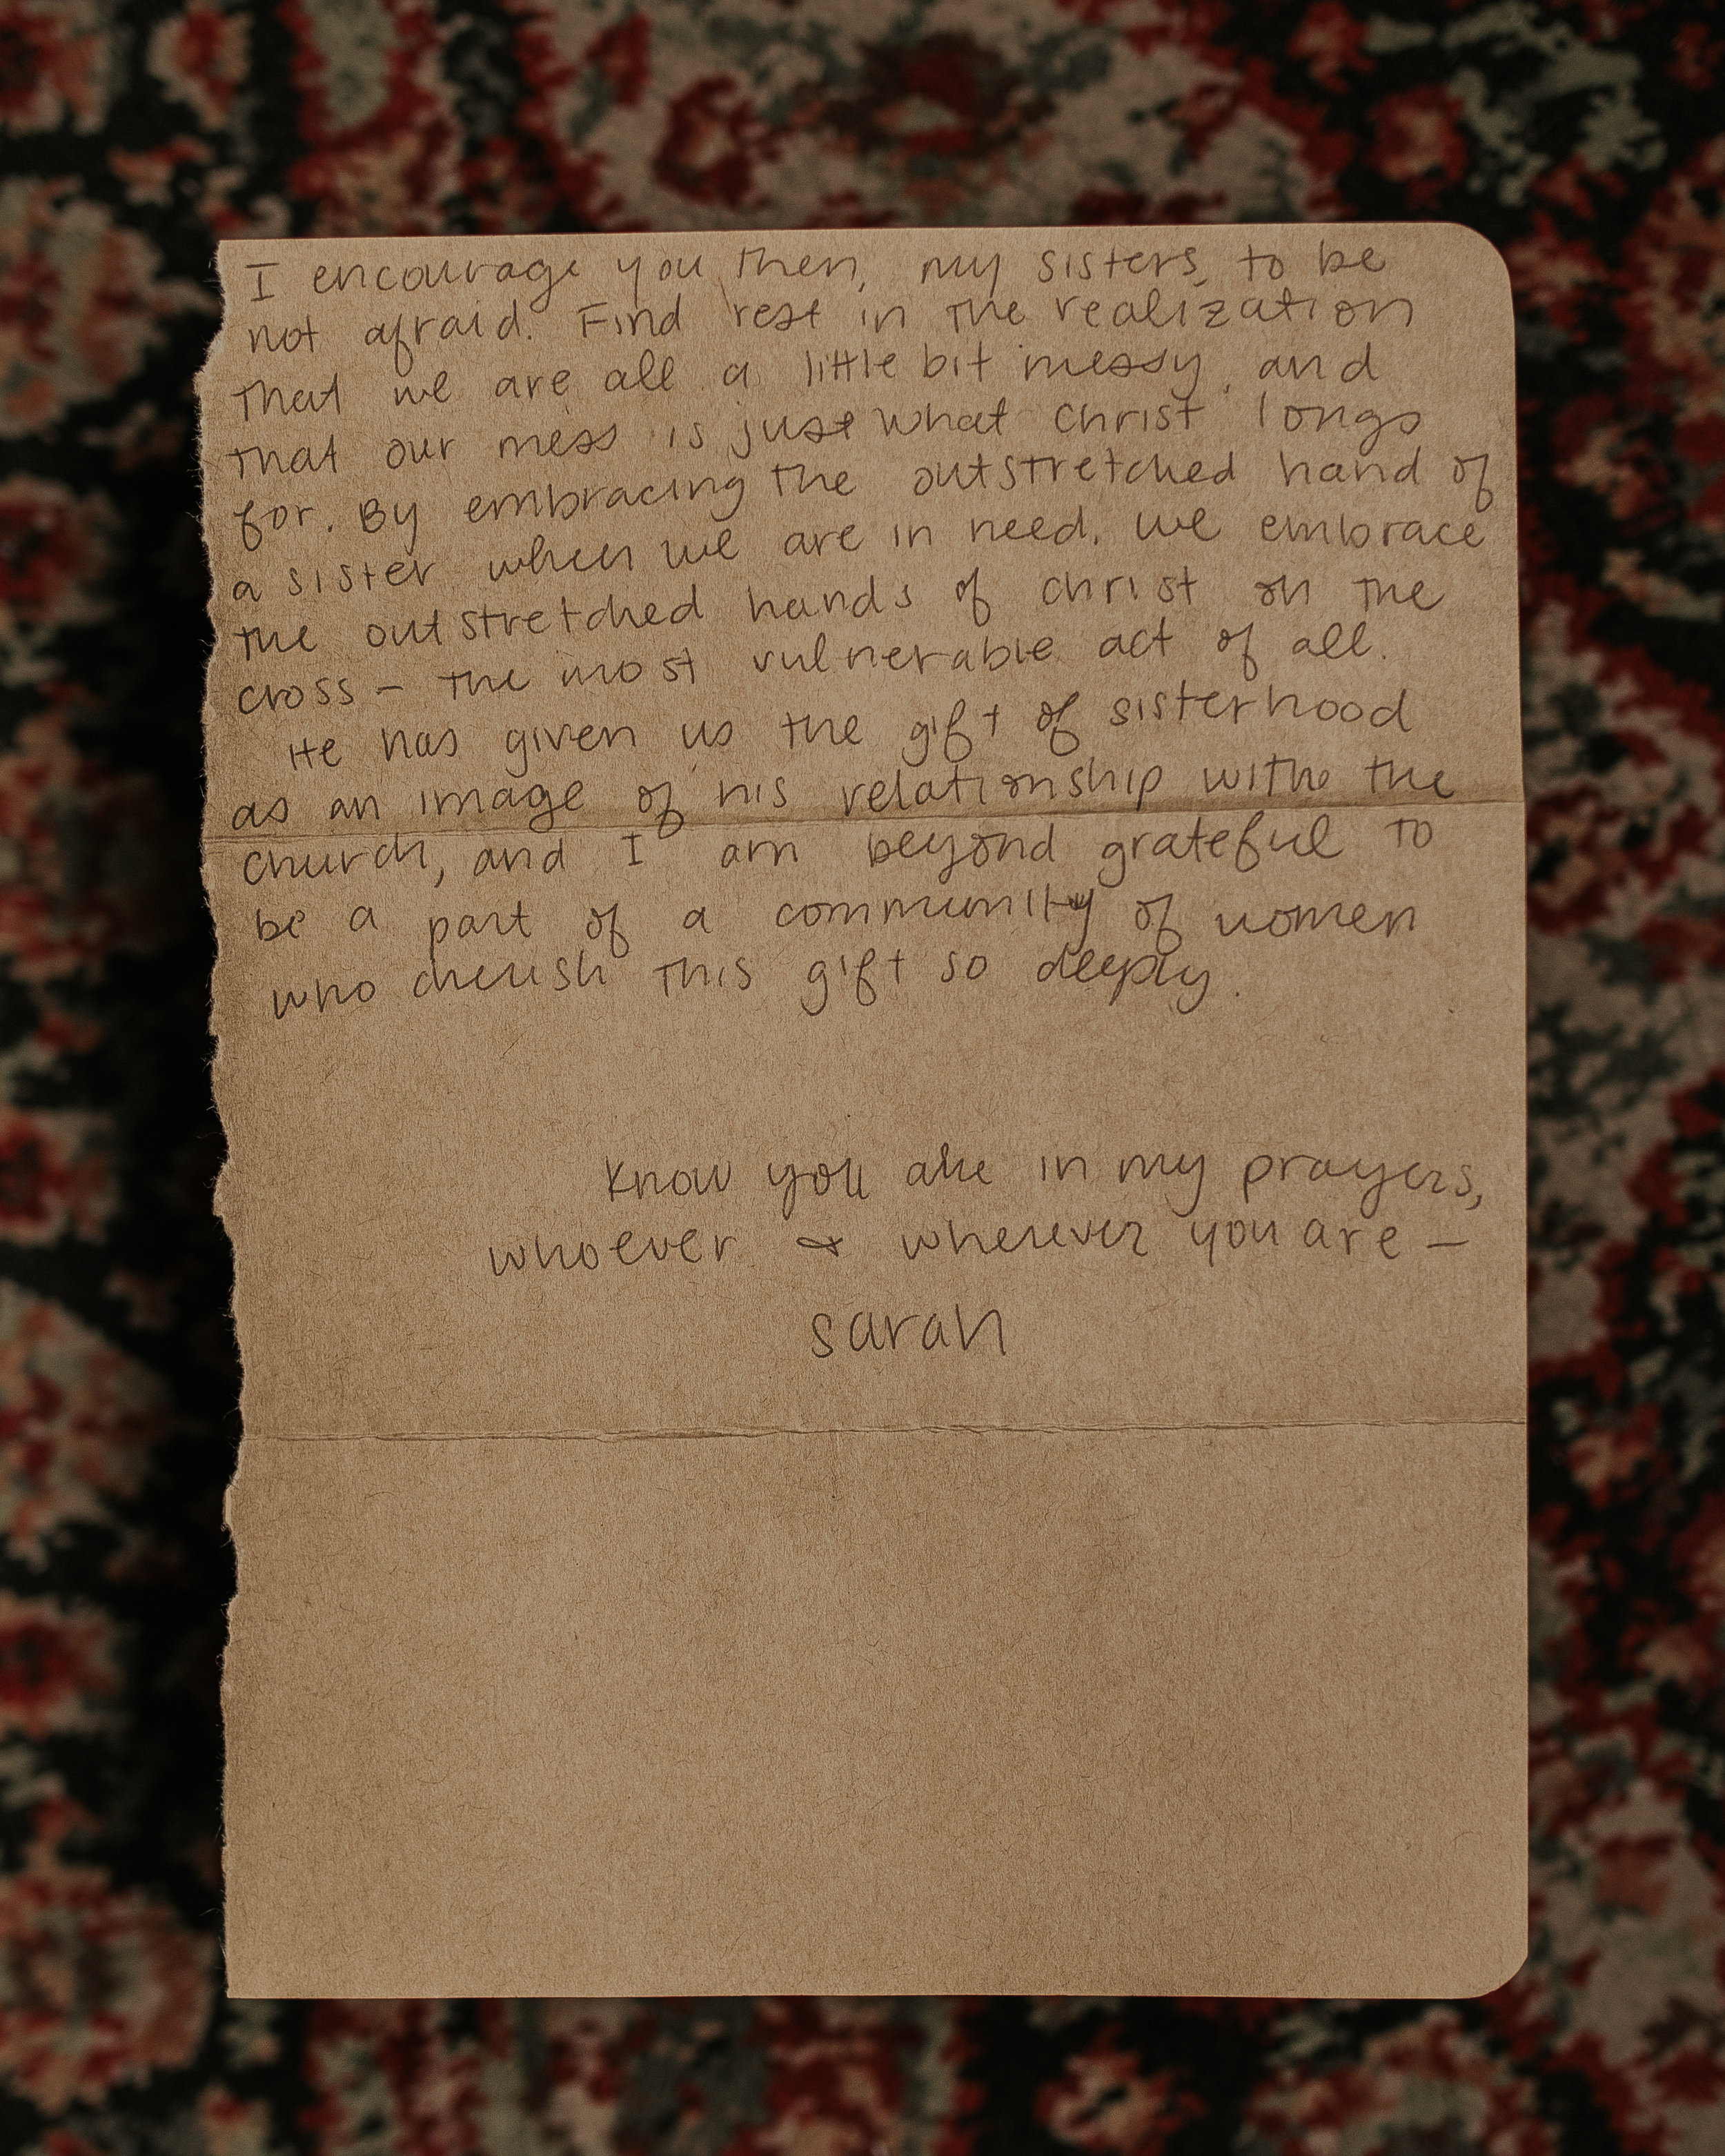 Sarah Malone Letter to Women the Catholic Woman 2